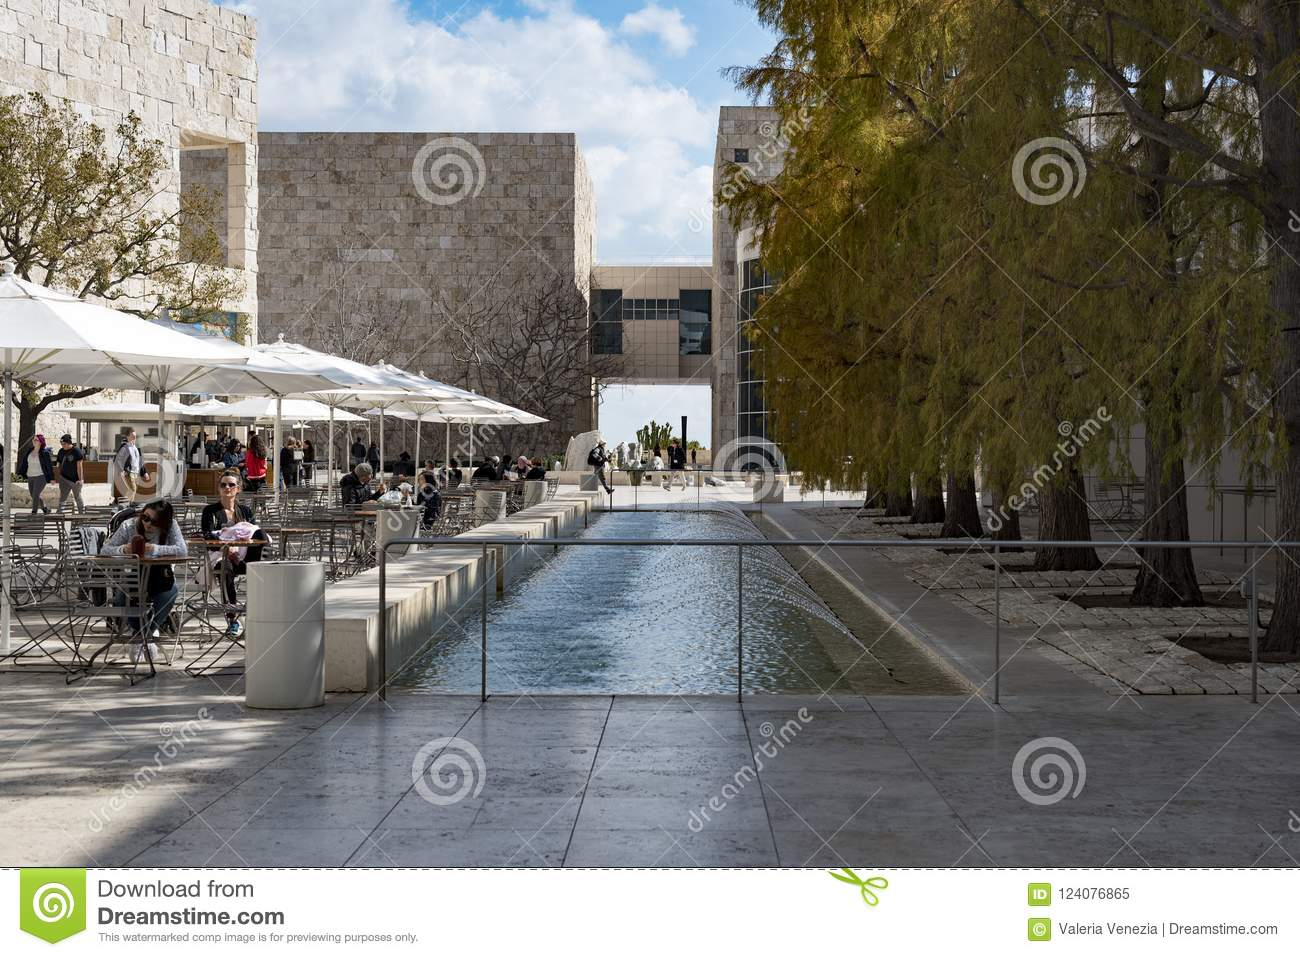 The Getty Center, campus of the Getty Museum.